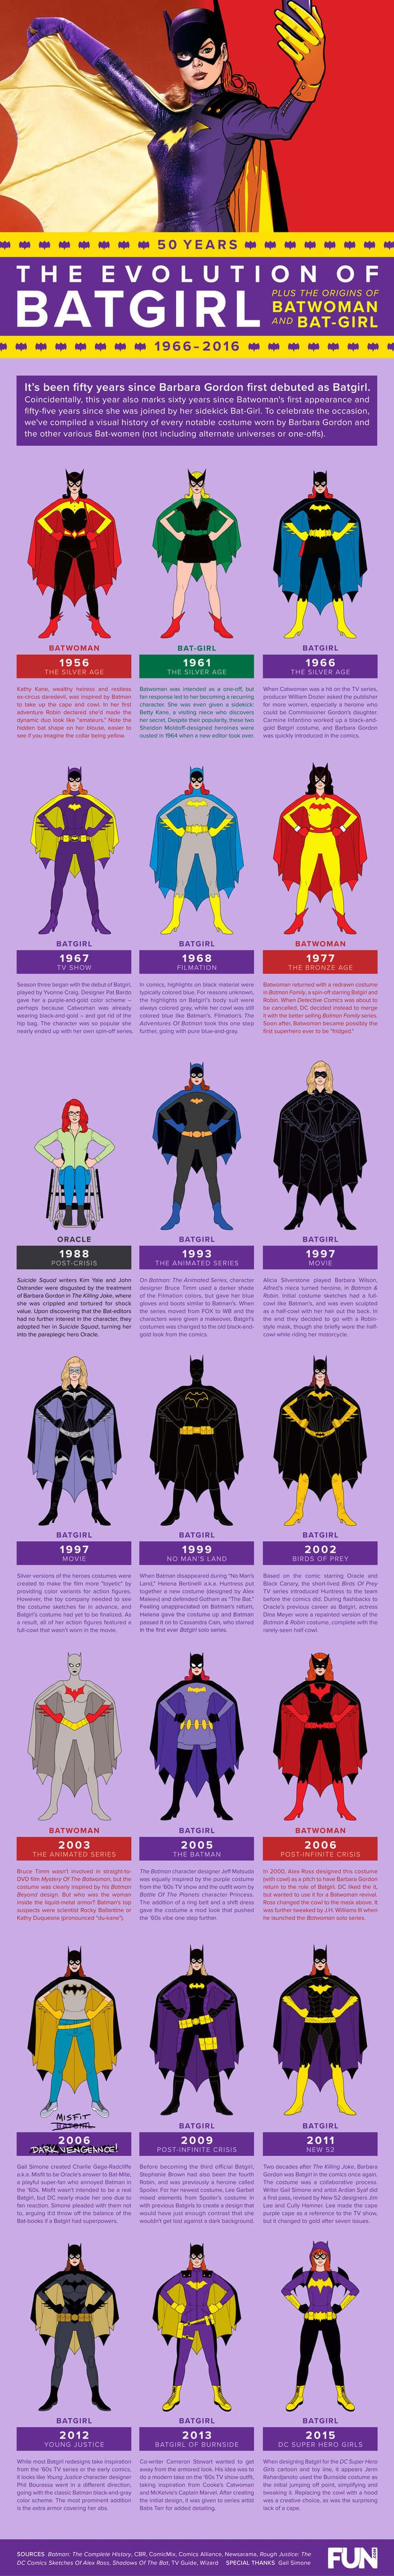 the-evolution-of-batgirl-infographic - Visit to grab an amazing super hero shirt now on sale!